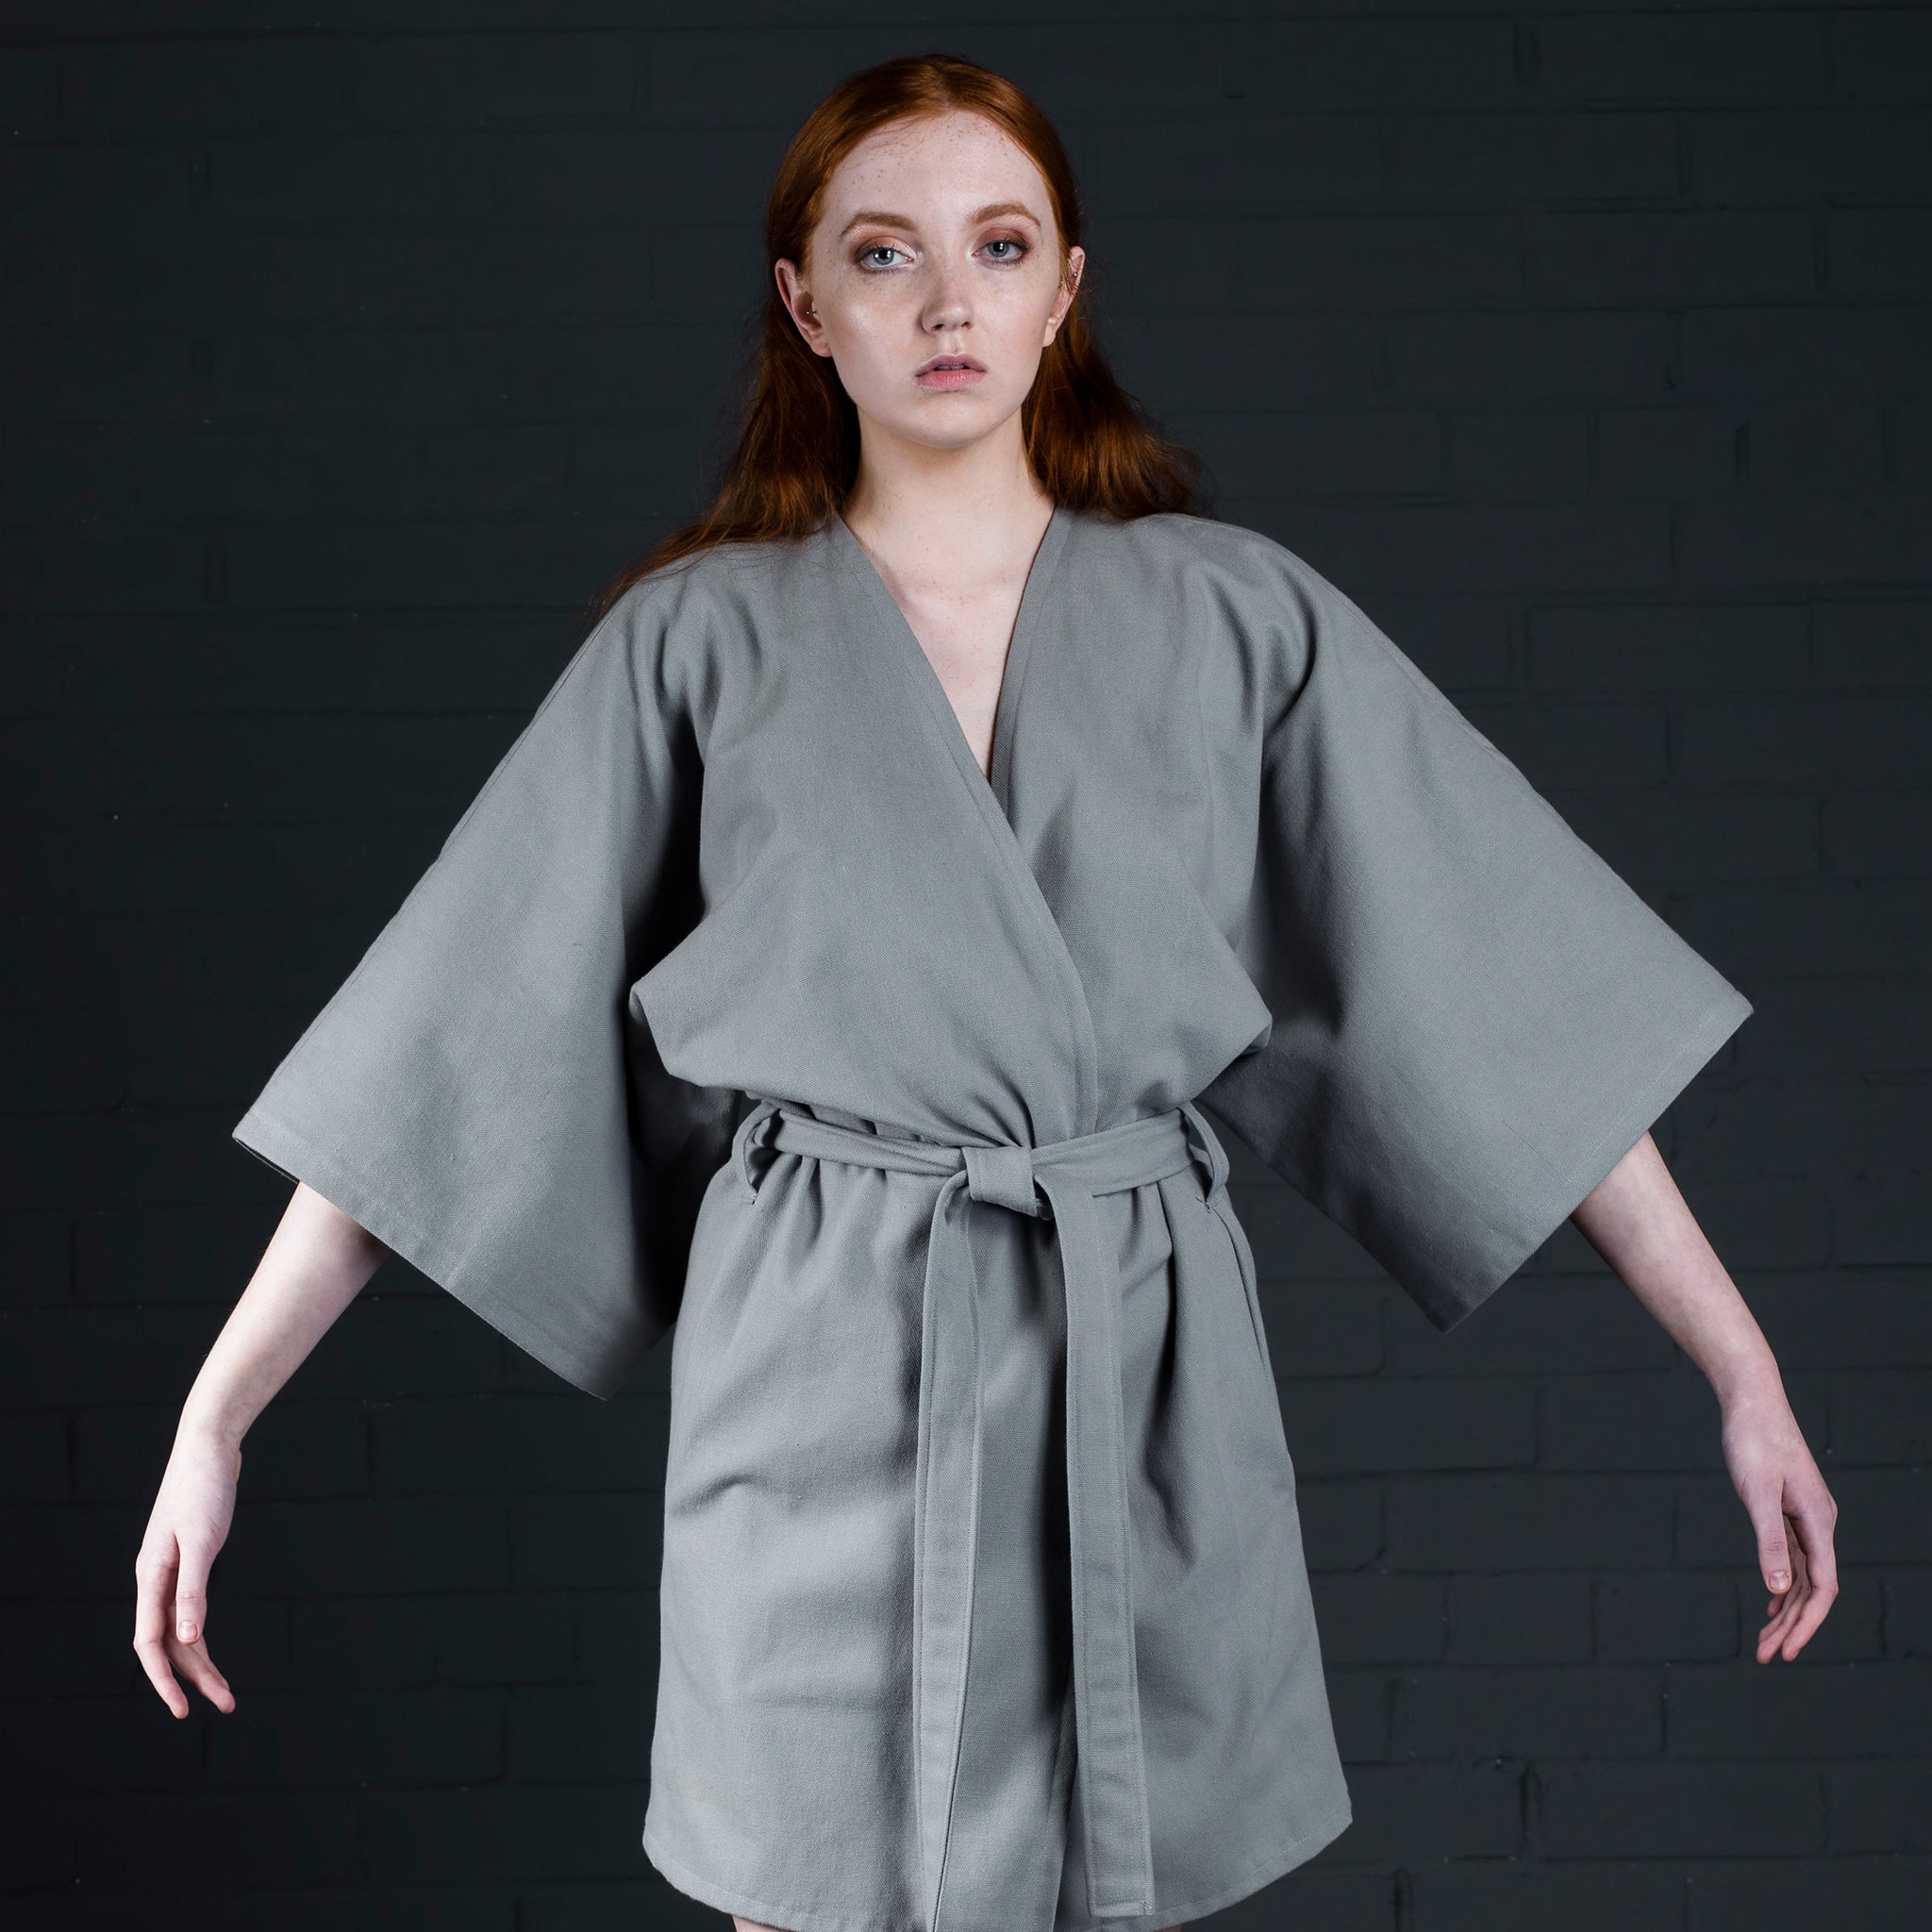 Kimono with pockets and belt batch manufactured in scotland